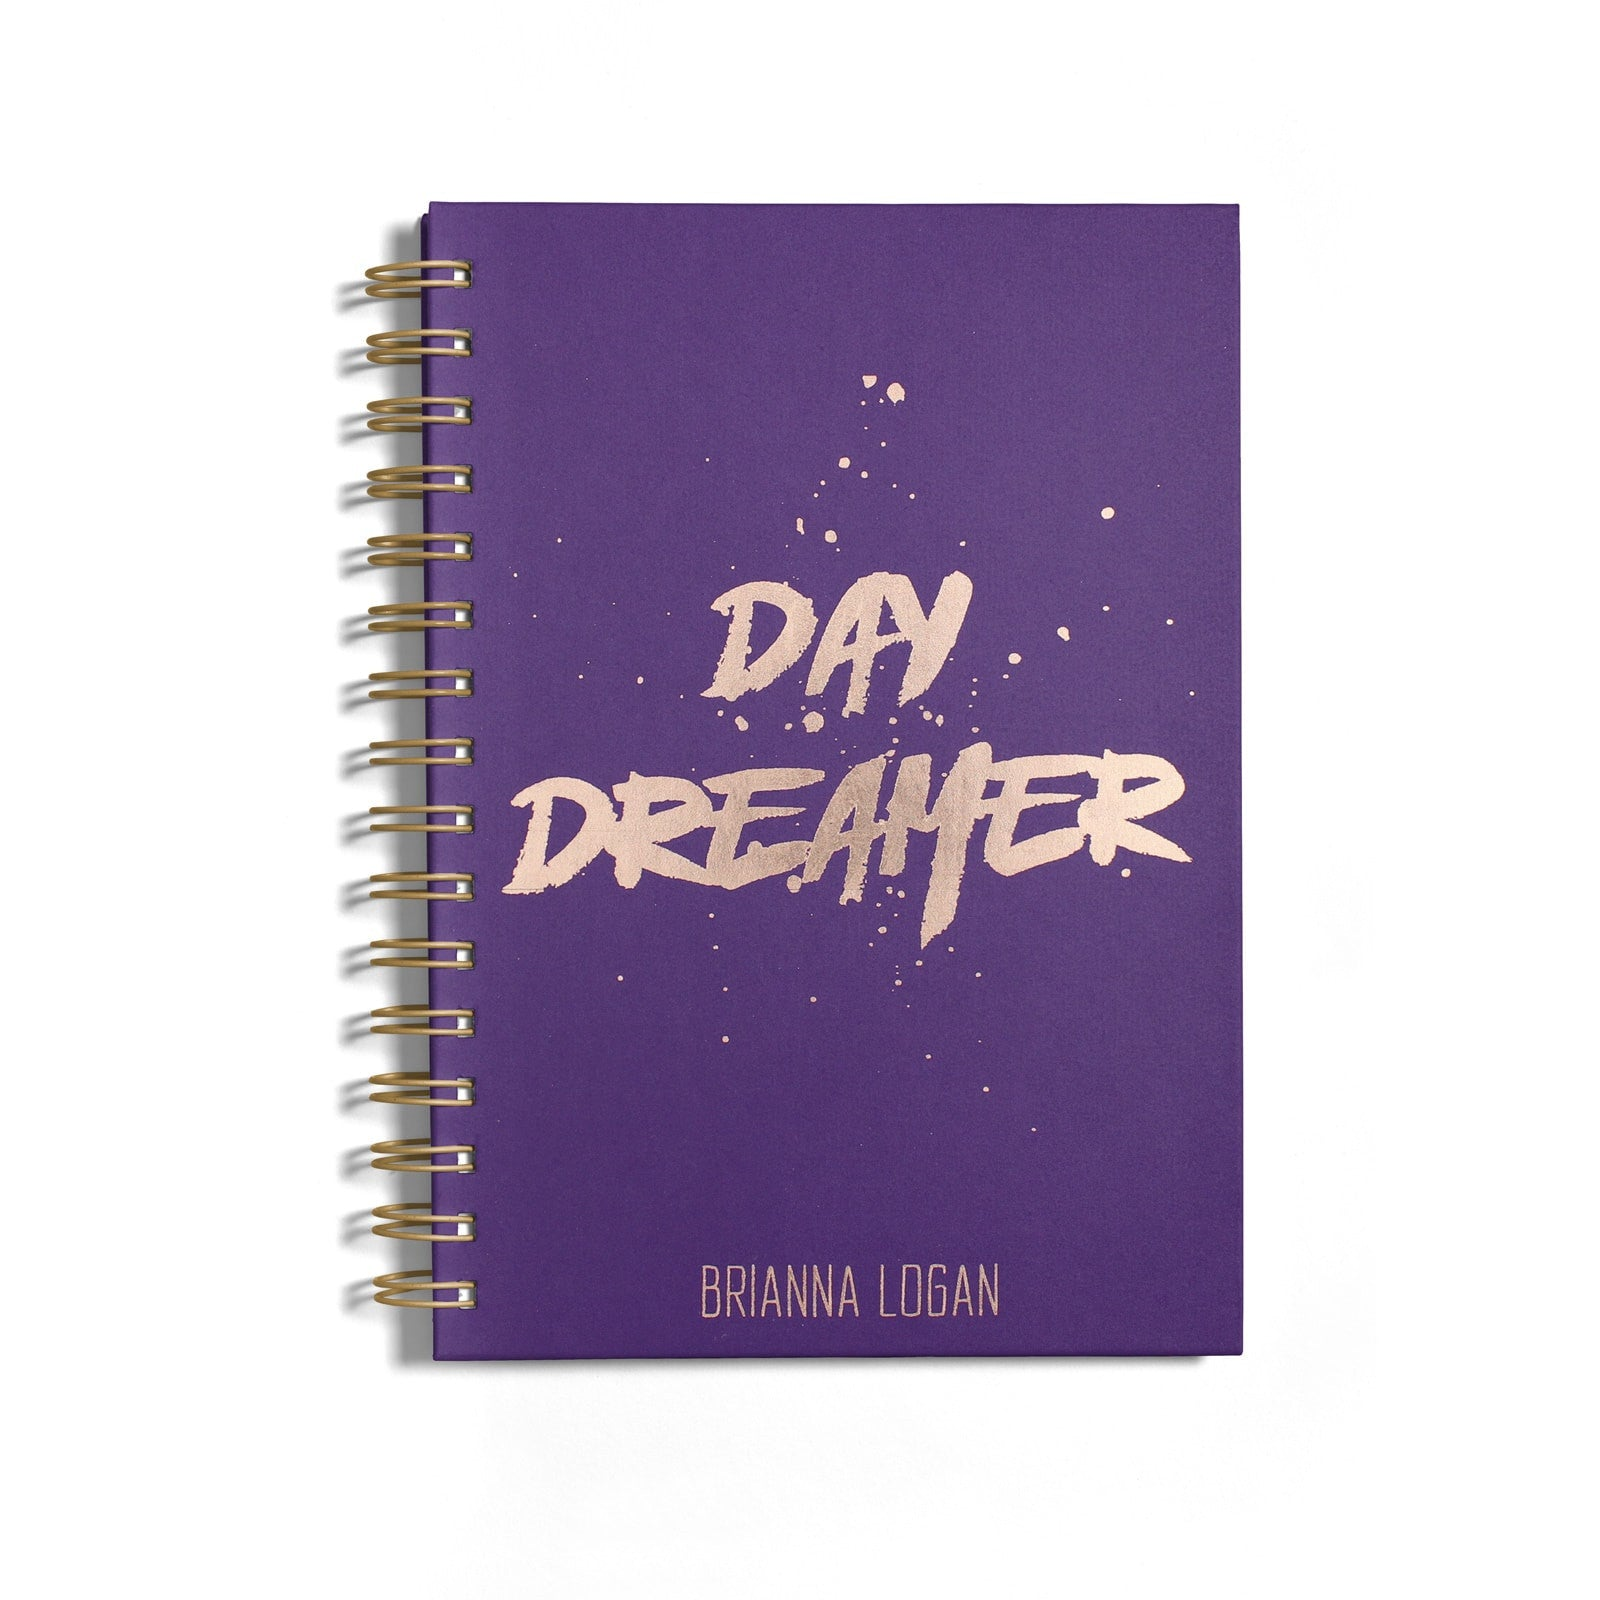 Personalised Rose Gold Foil Day Dreamer Notebook